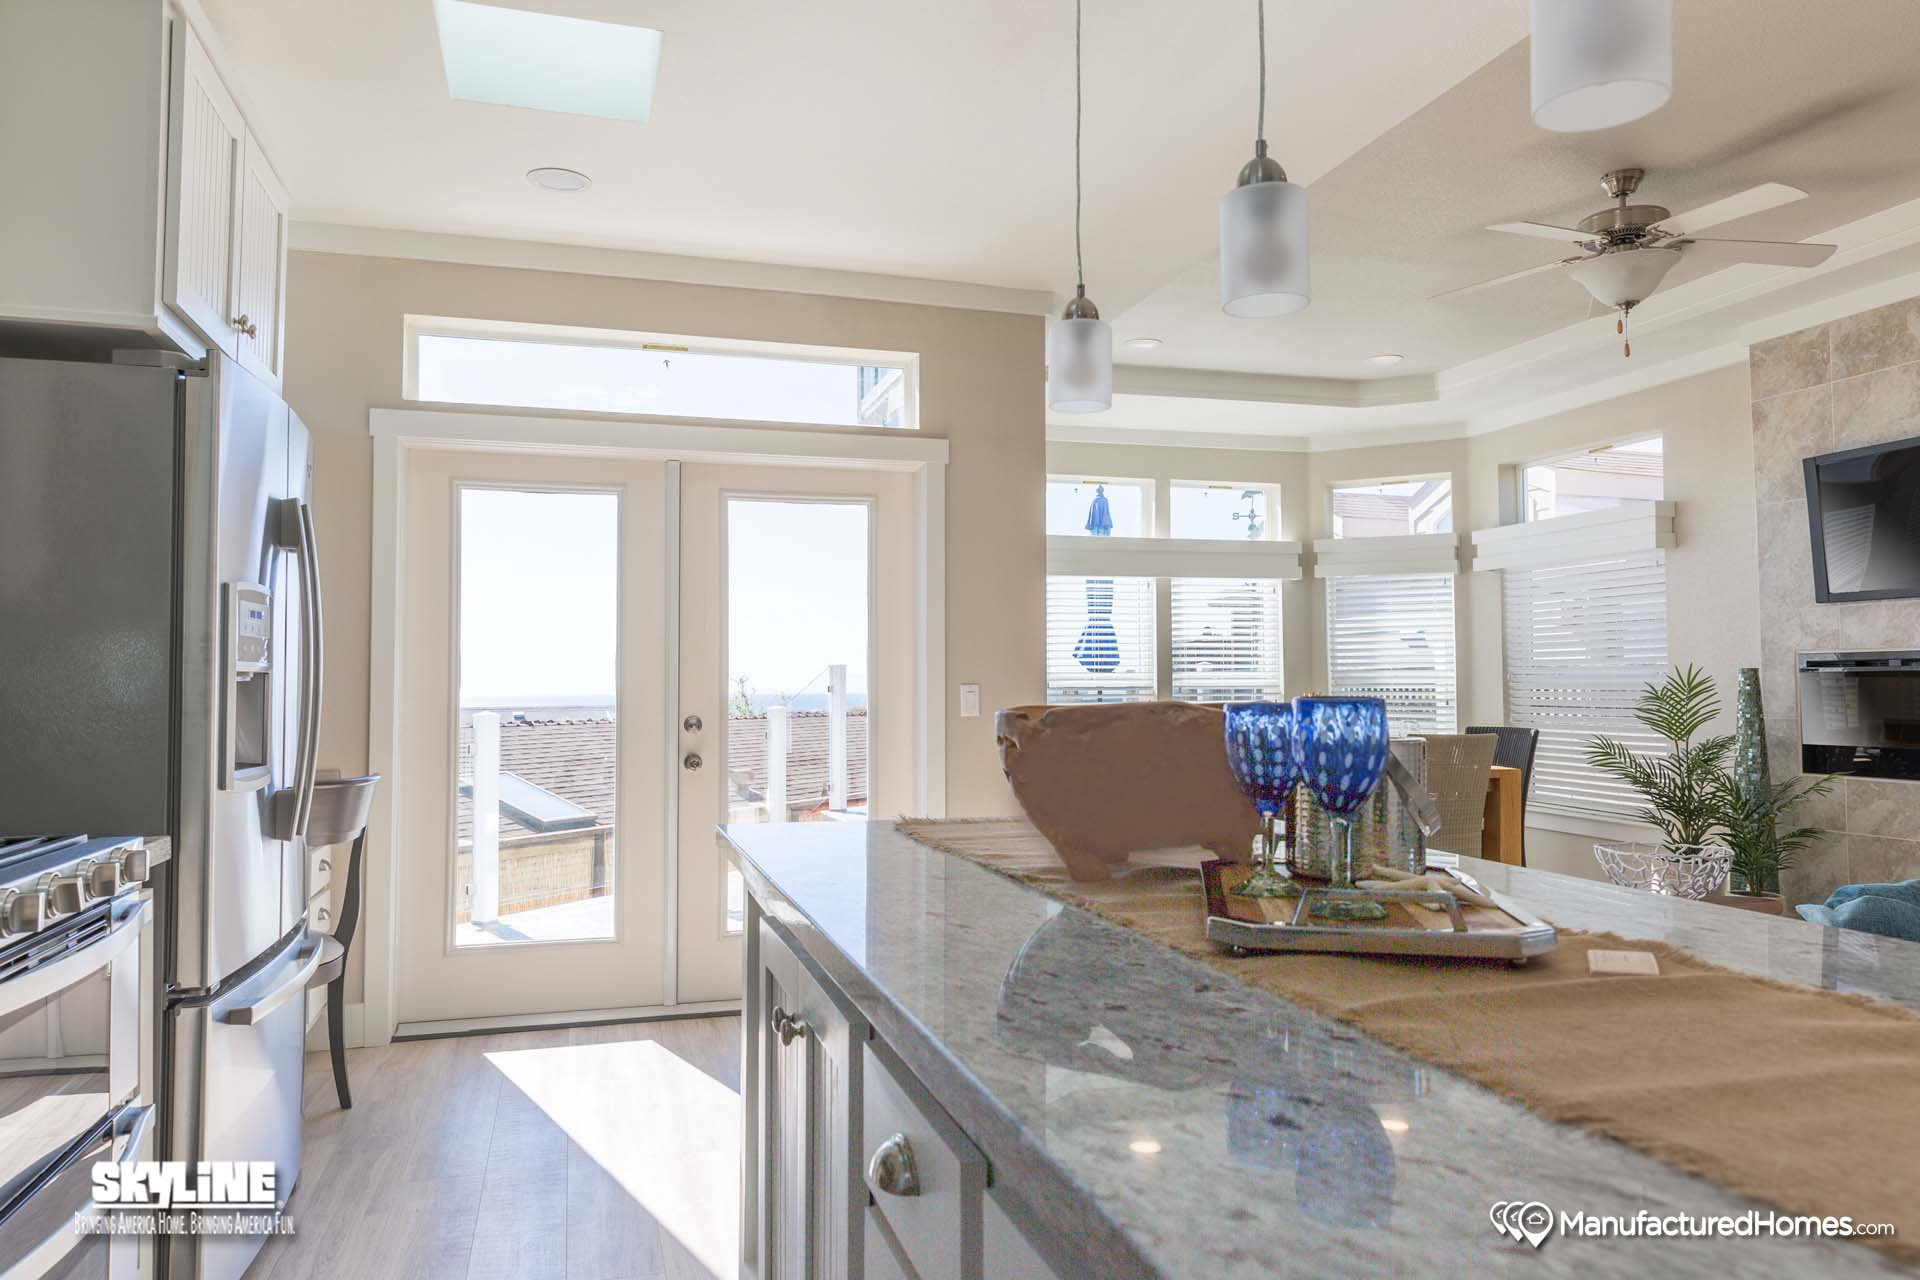 Amber Cove Premier Custom / 239J by Skyline Homes